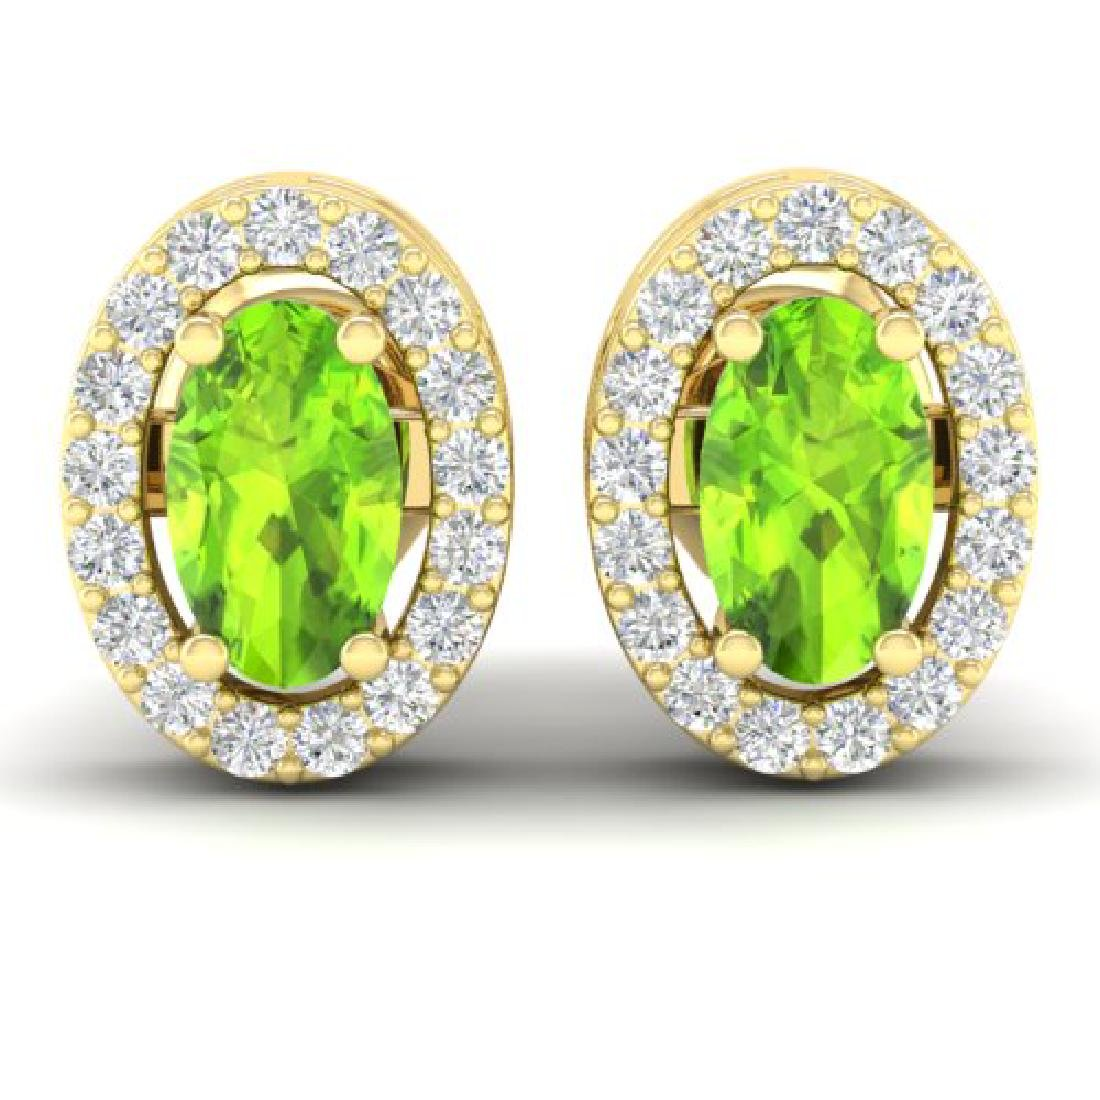 0.75 CTW Peridot & Micro Pave VS/SI Diamond Earrings